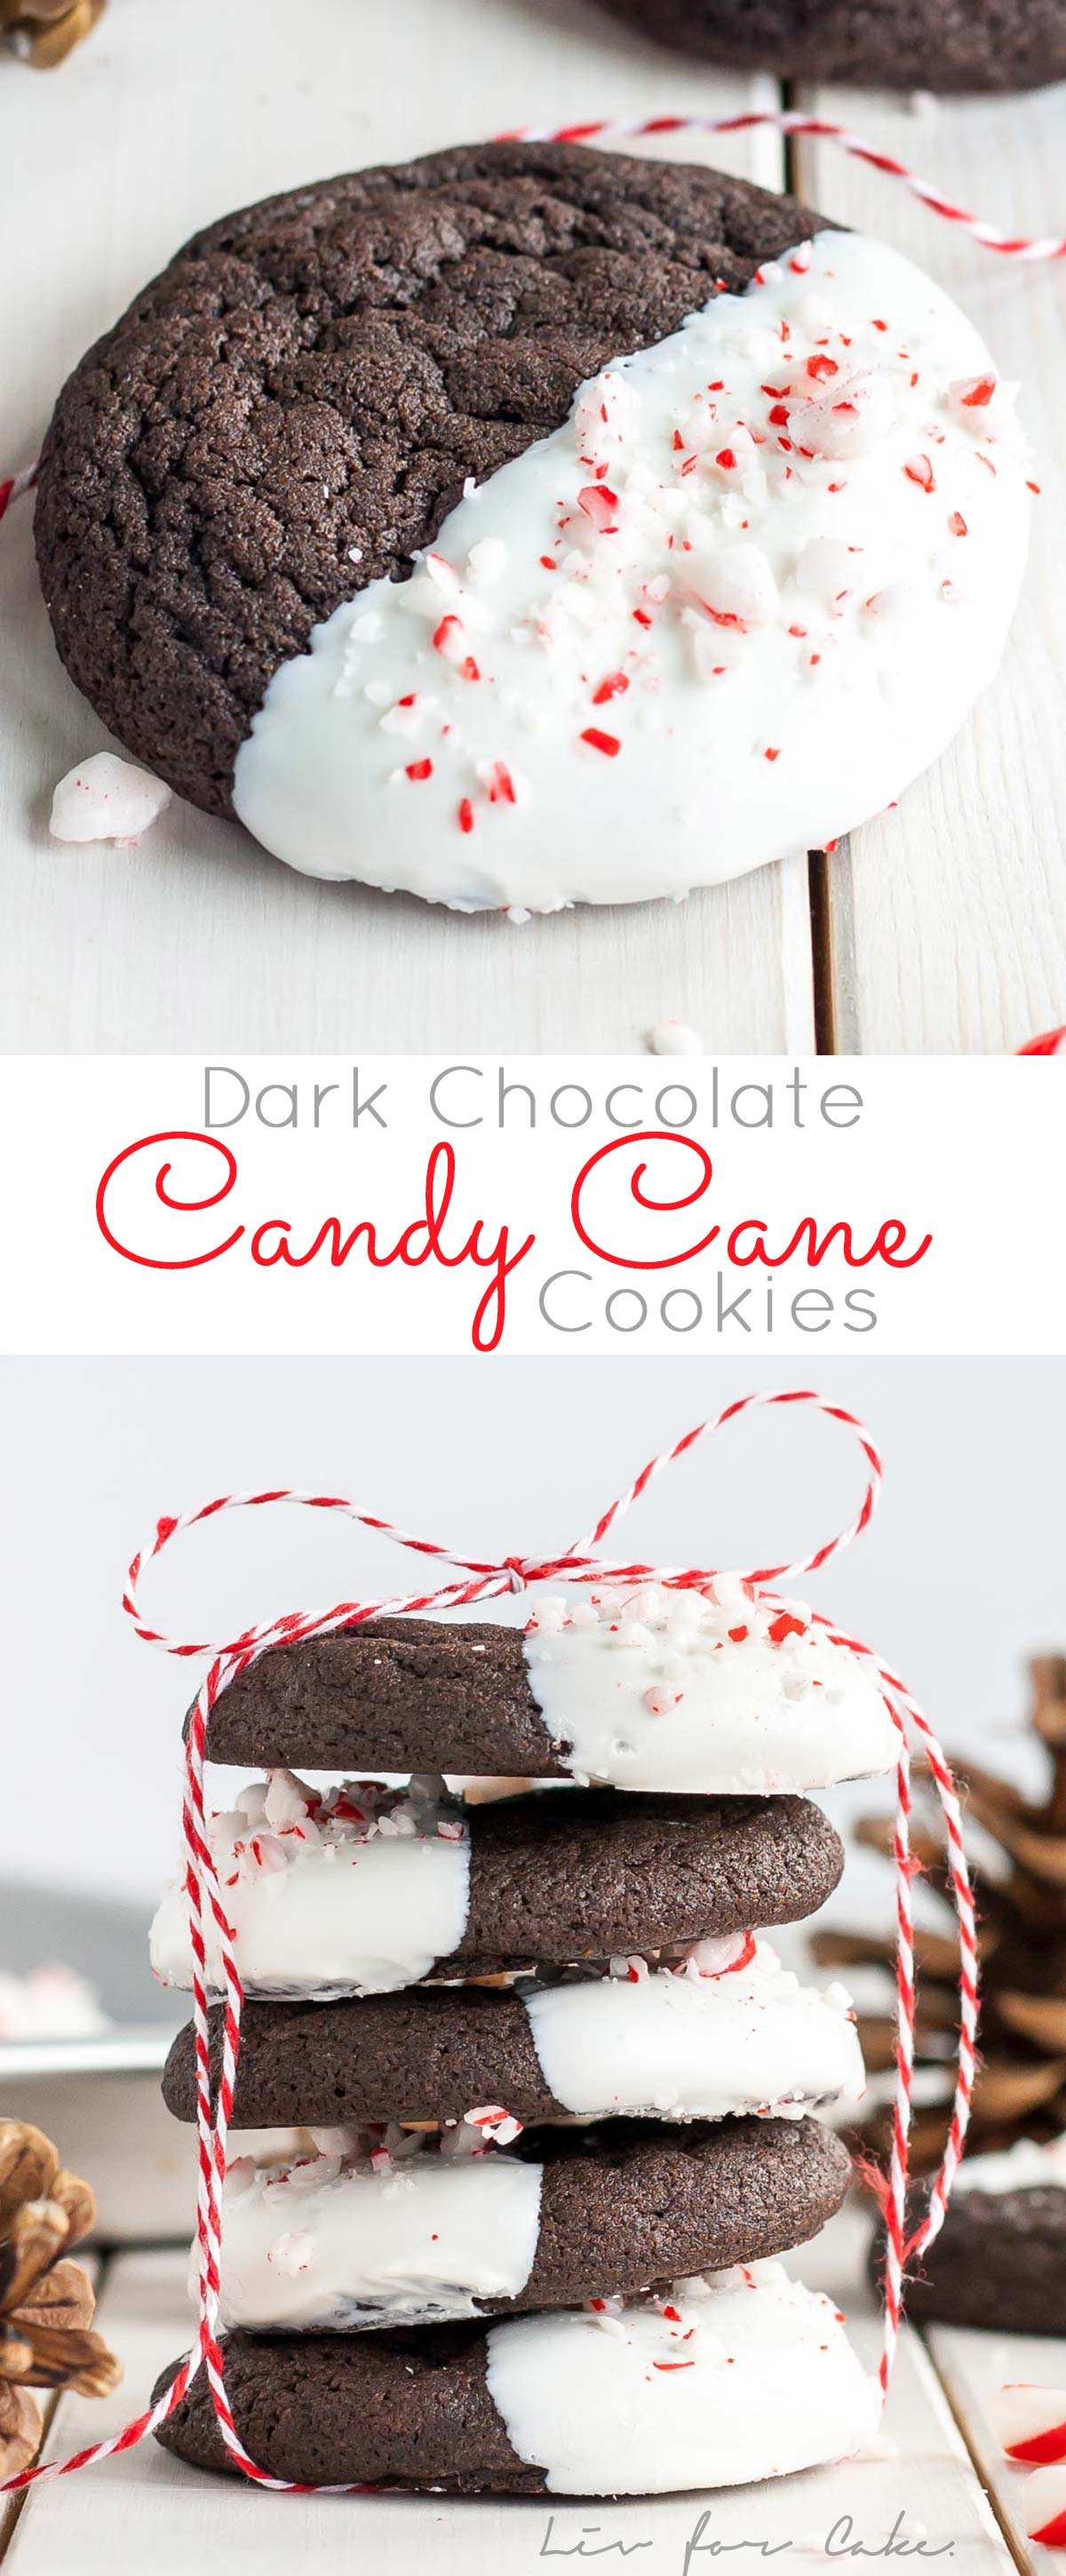 Dark Chocolate Candy Cane Cookies! The classic combination of chocolate and peppermint make these Dark Chocolate Candy Cane Cookies the perfect treat for the holidays!